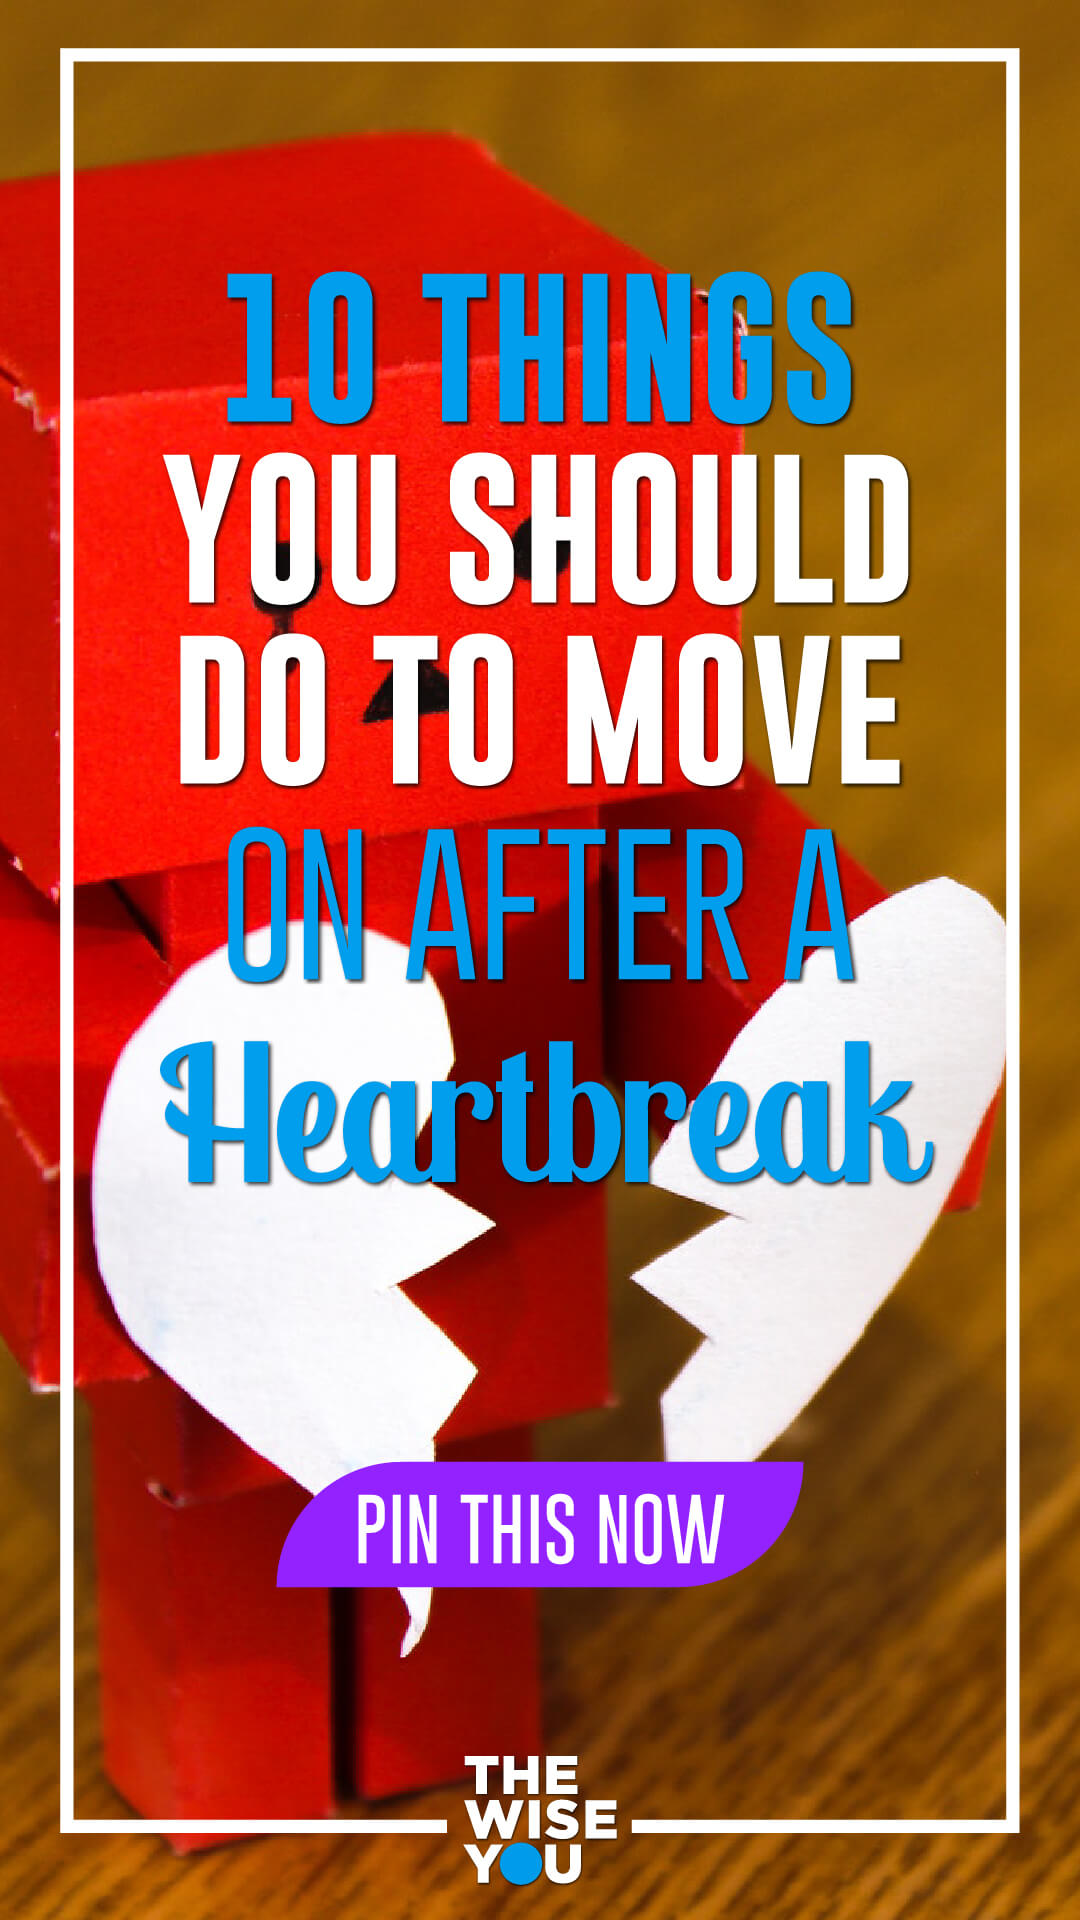 Move On After a Heartbreak